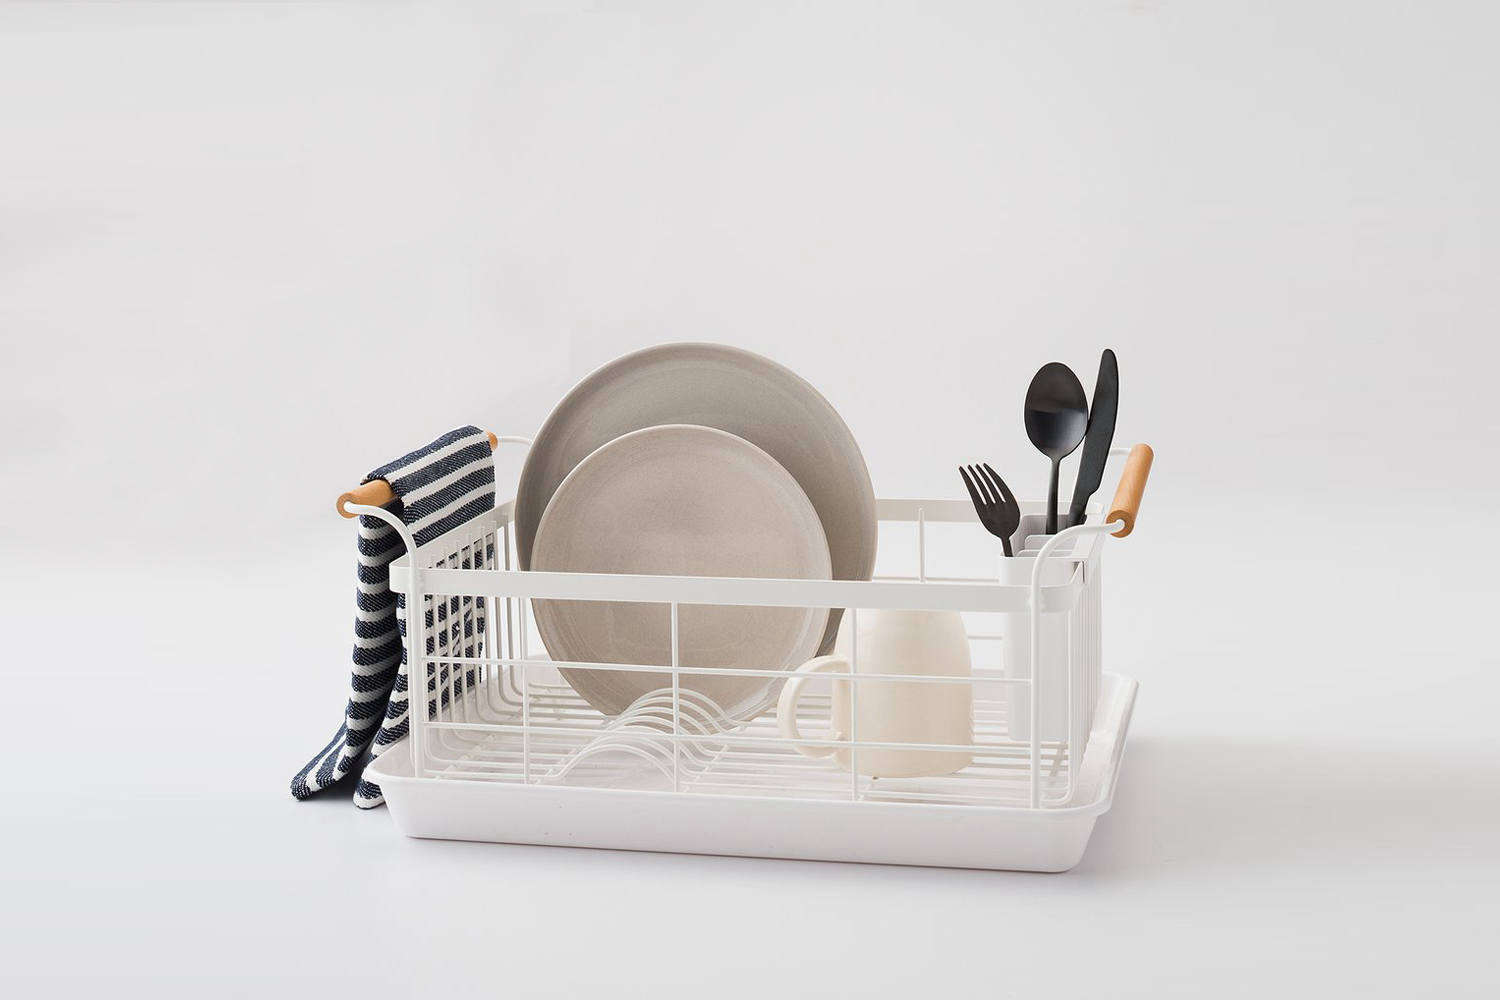 The Yamazaki Wood Handled Dish Drainer is made of powder coated steel and walnut handles; $68 at Schoolhouse. For more on Yamazaki seeGenius Low-Cost Storage Solutions from Japan.